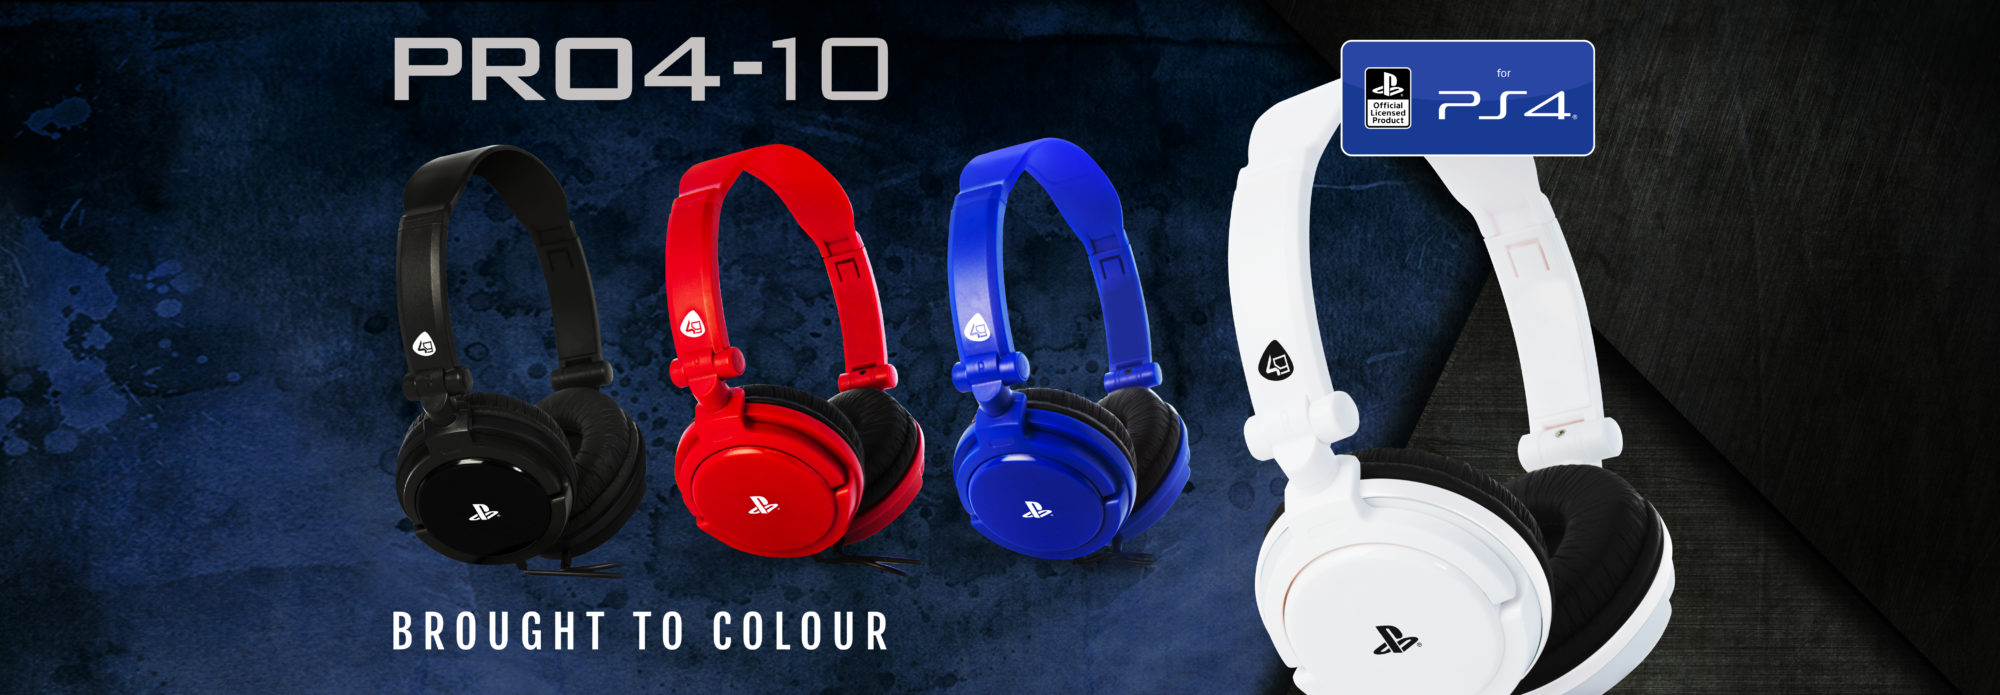 PRO4-10 Stereo Gaming Headset